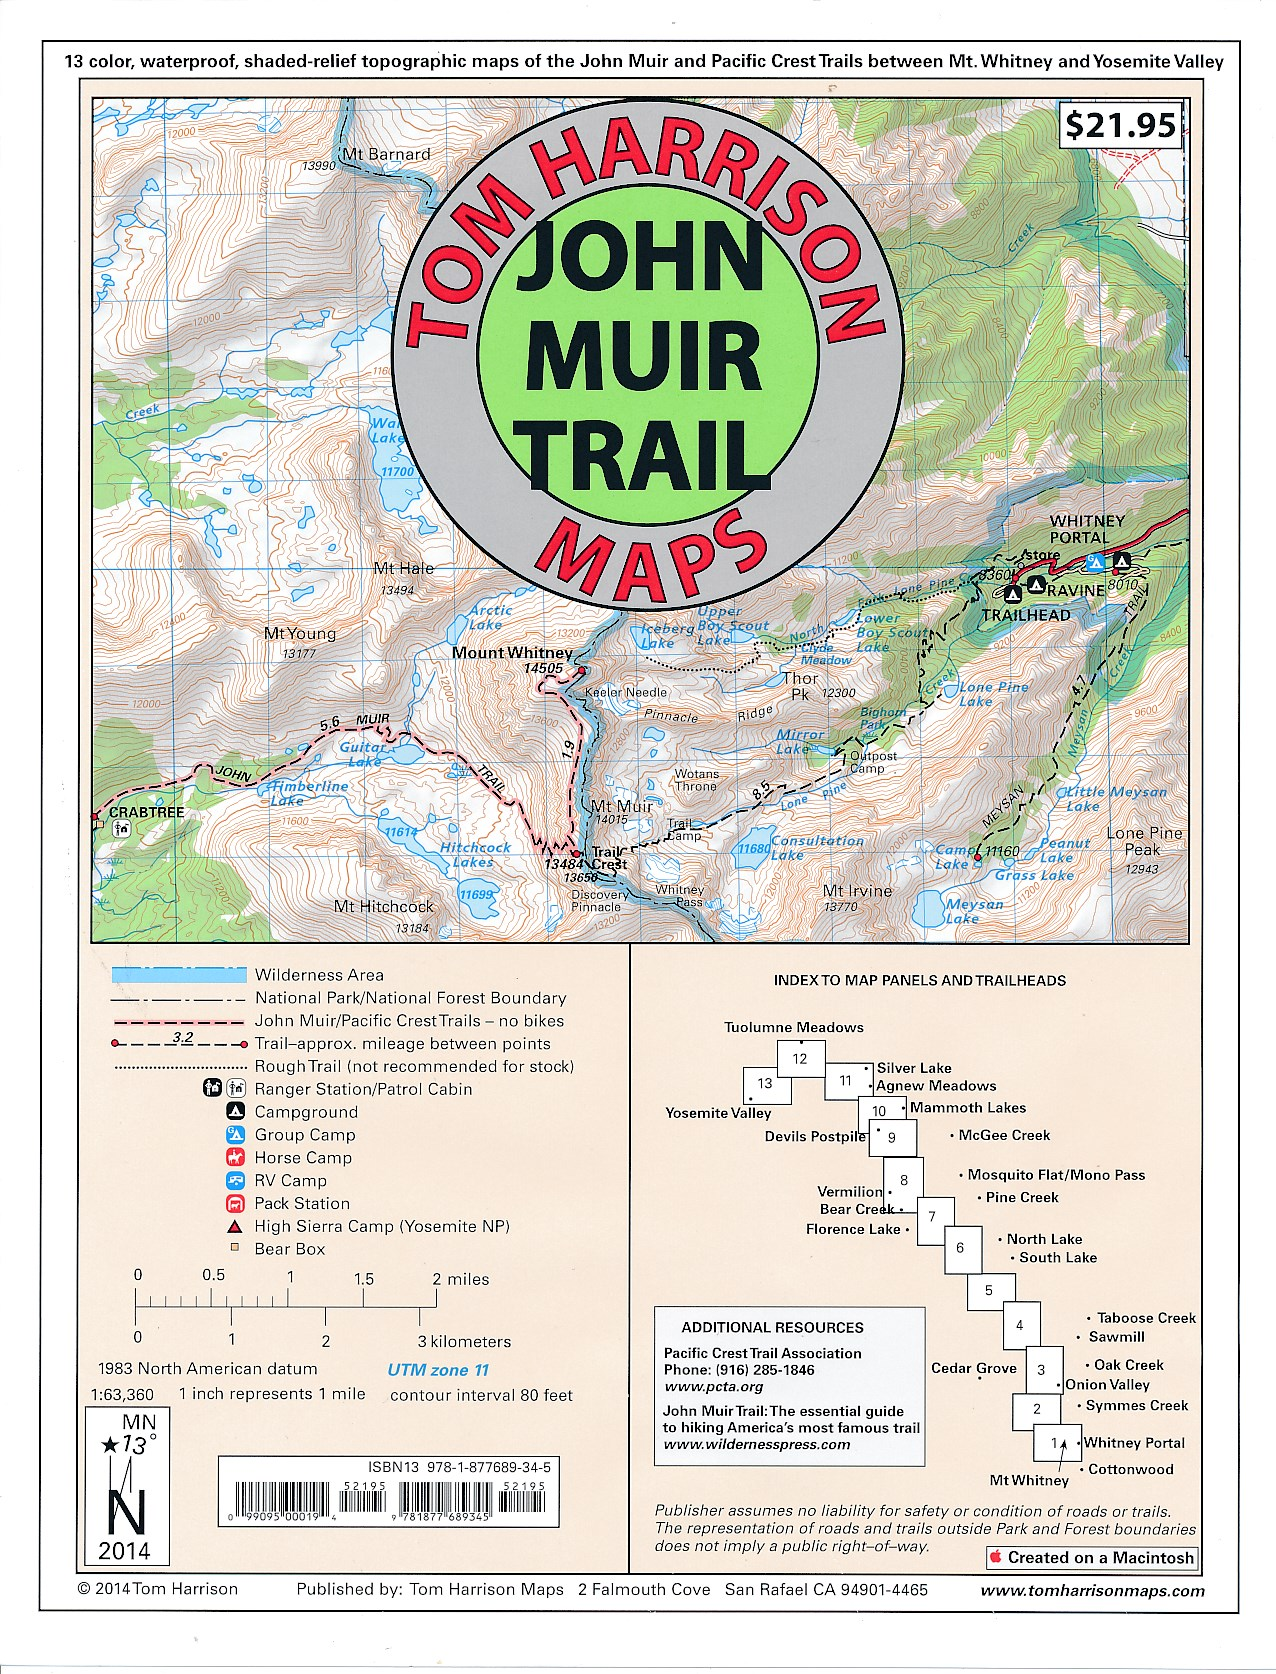 John Muir Trail | wandelkaarten 1:63.360 9781877689345  Tom Harrisons Maps   Wandelkaarten California, Nevada